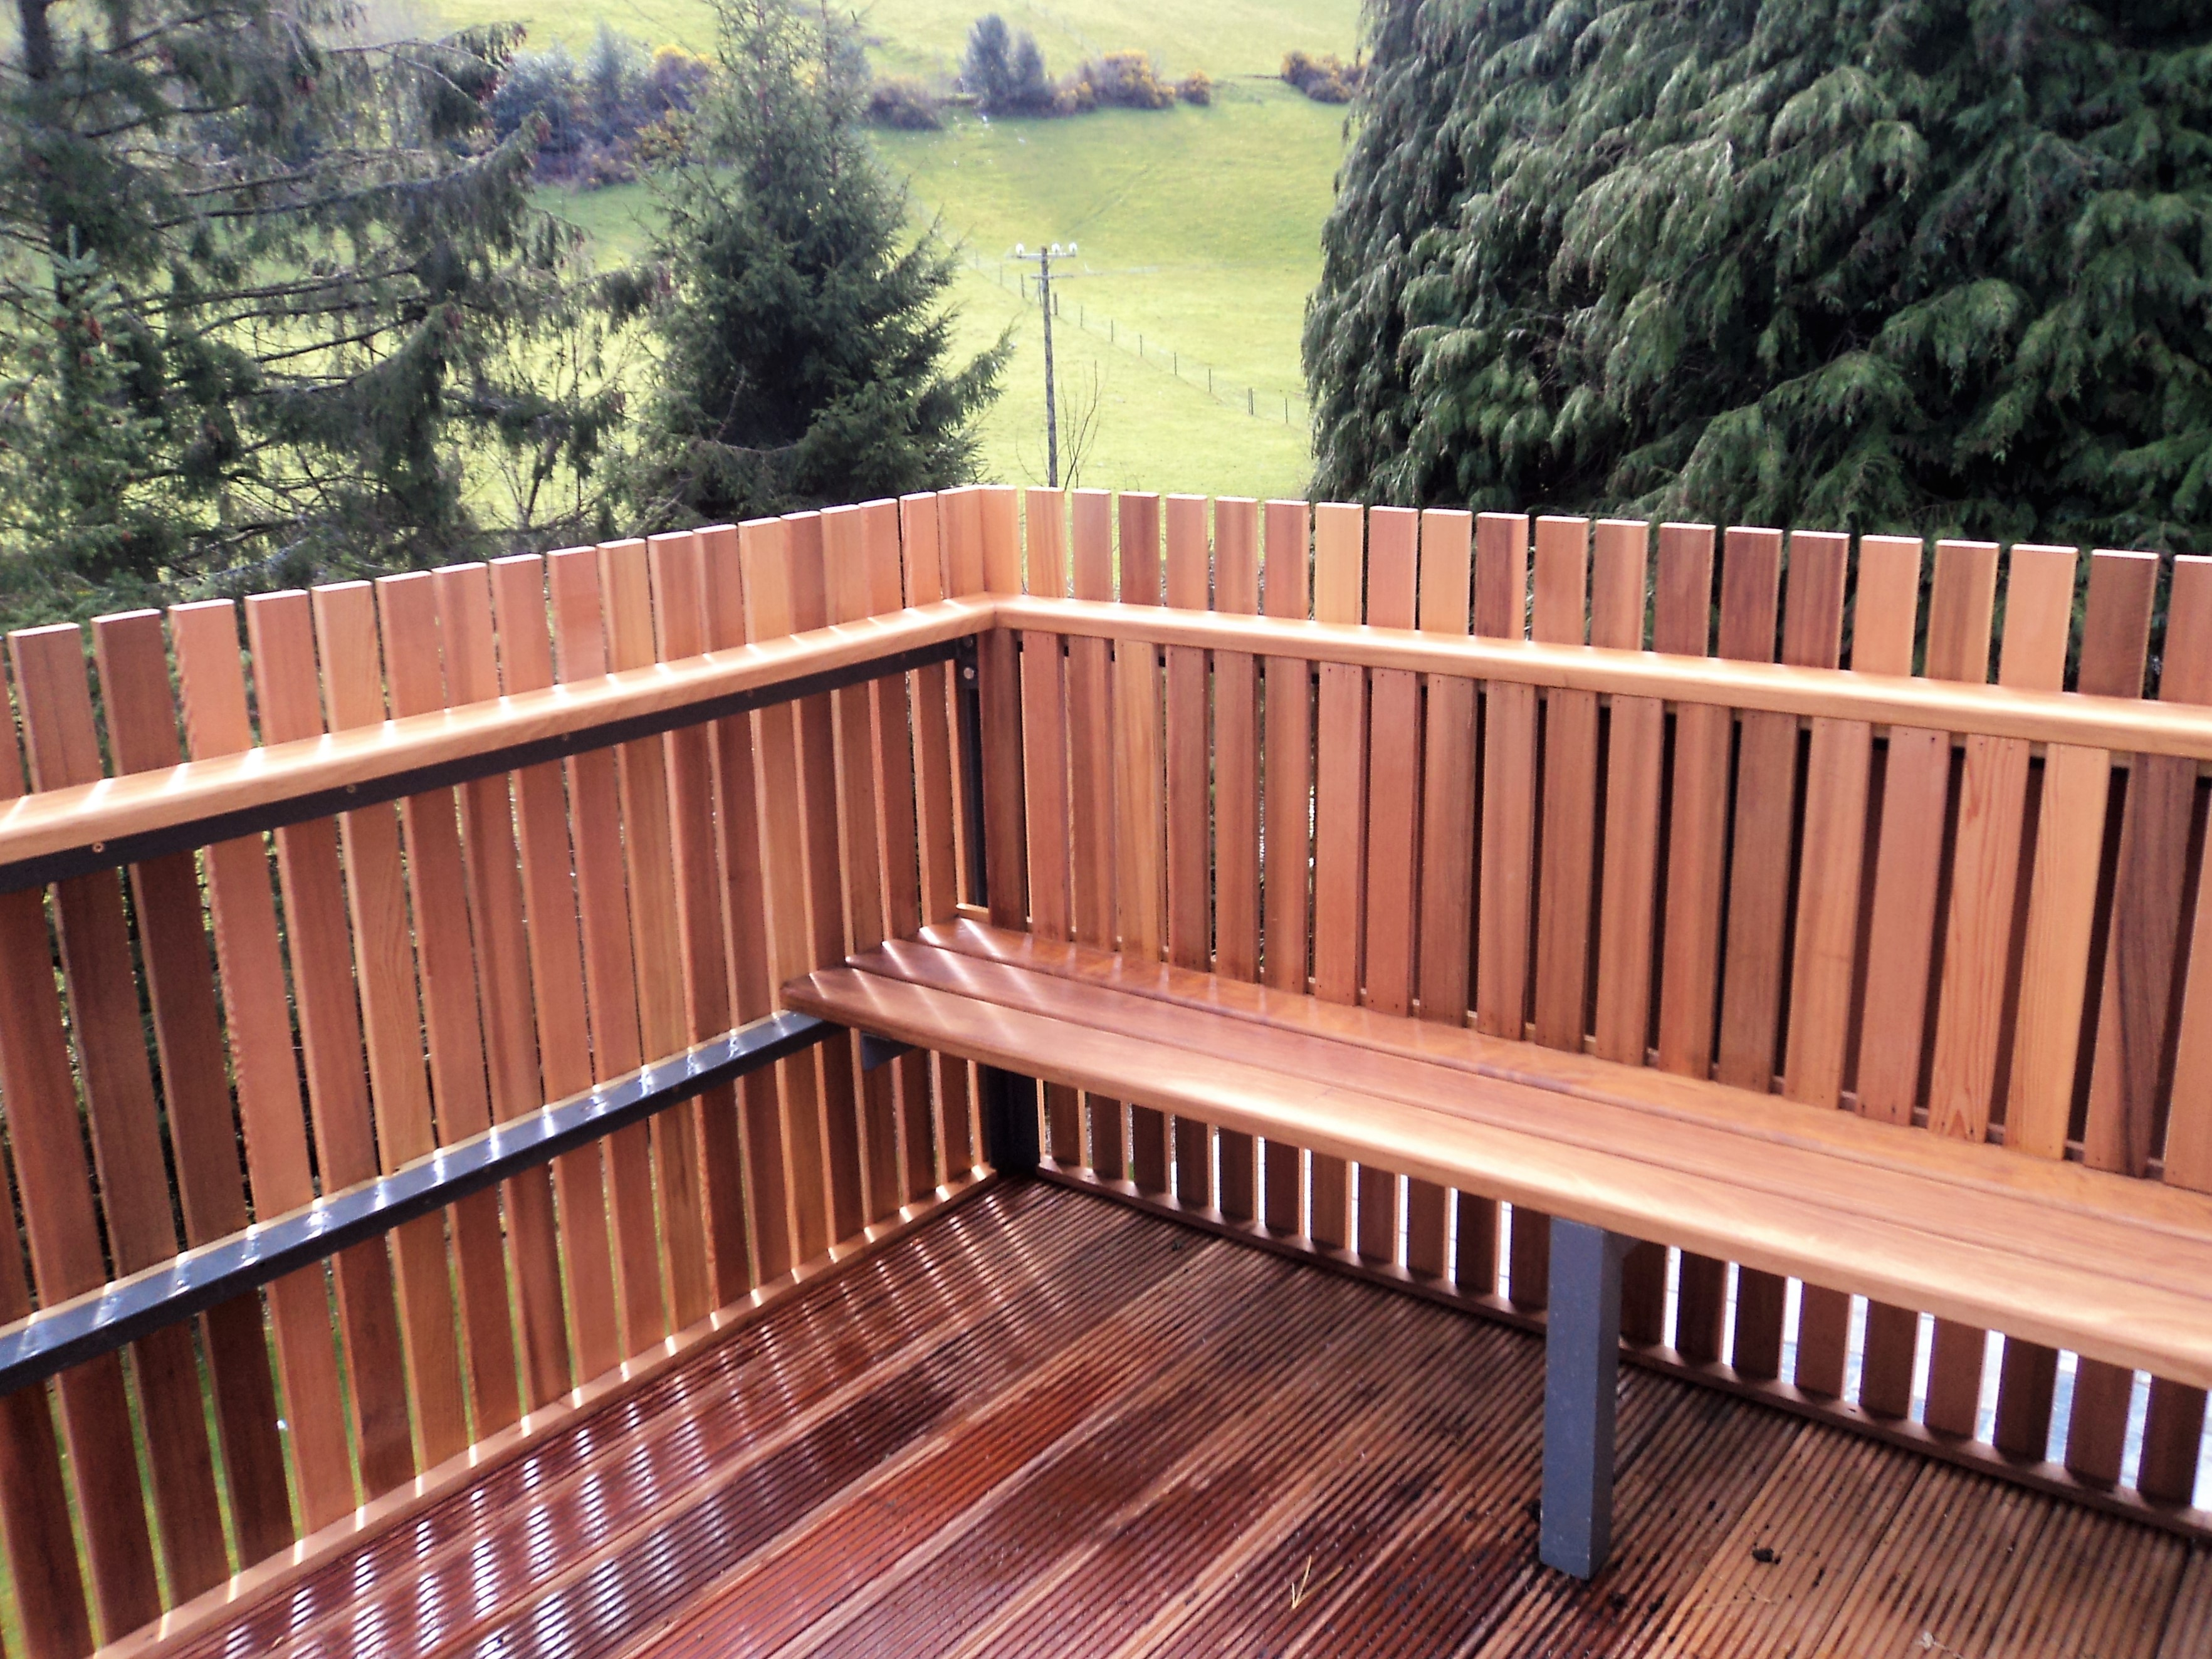 Outdoor Wooden Seating Balcony Extension in Avoca, Co. Wicklow